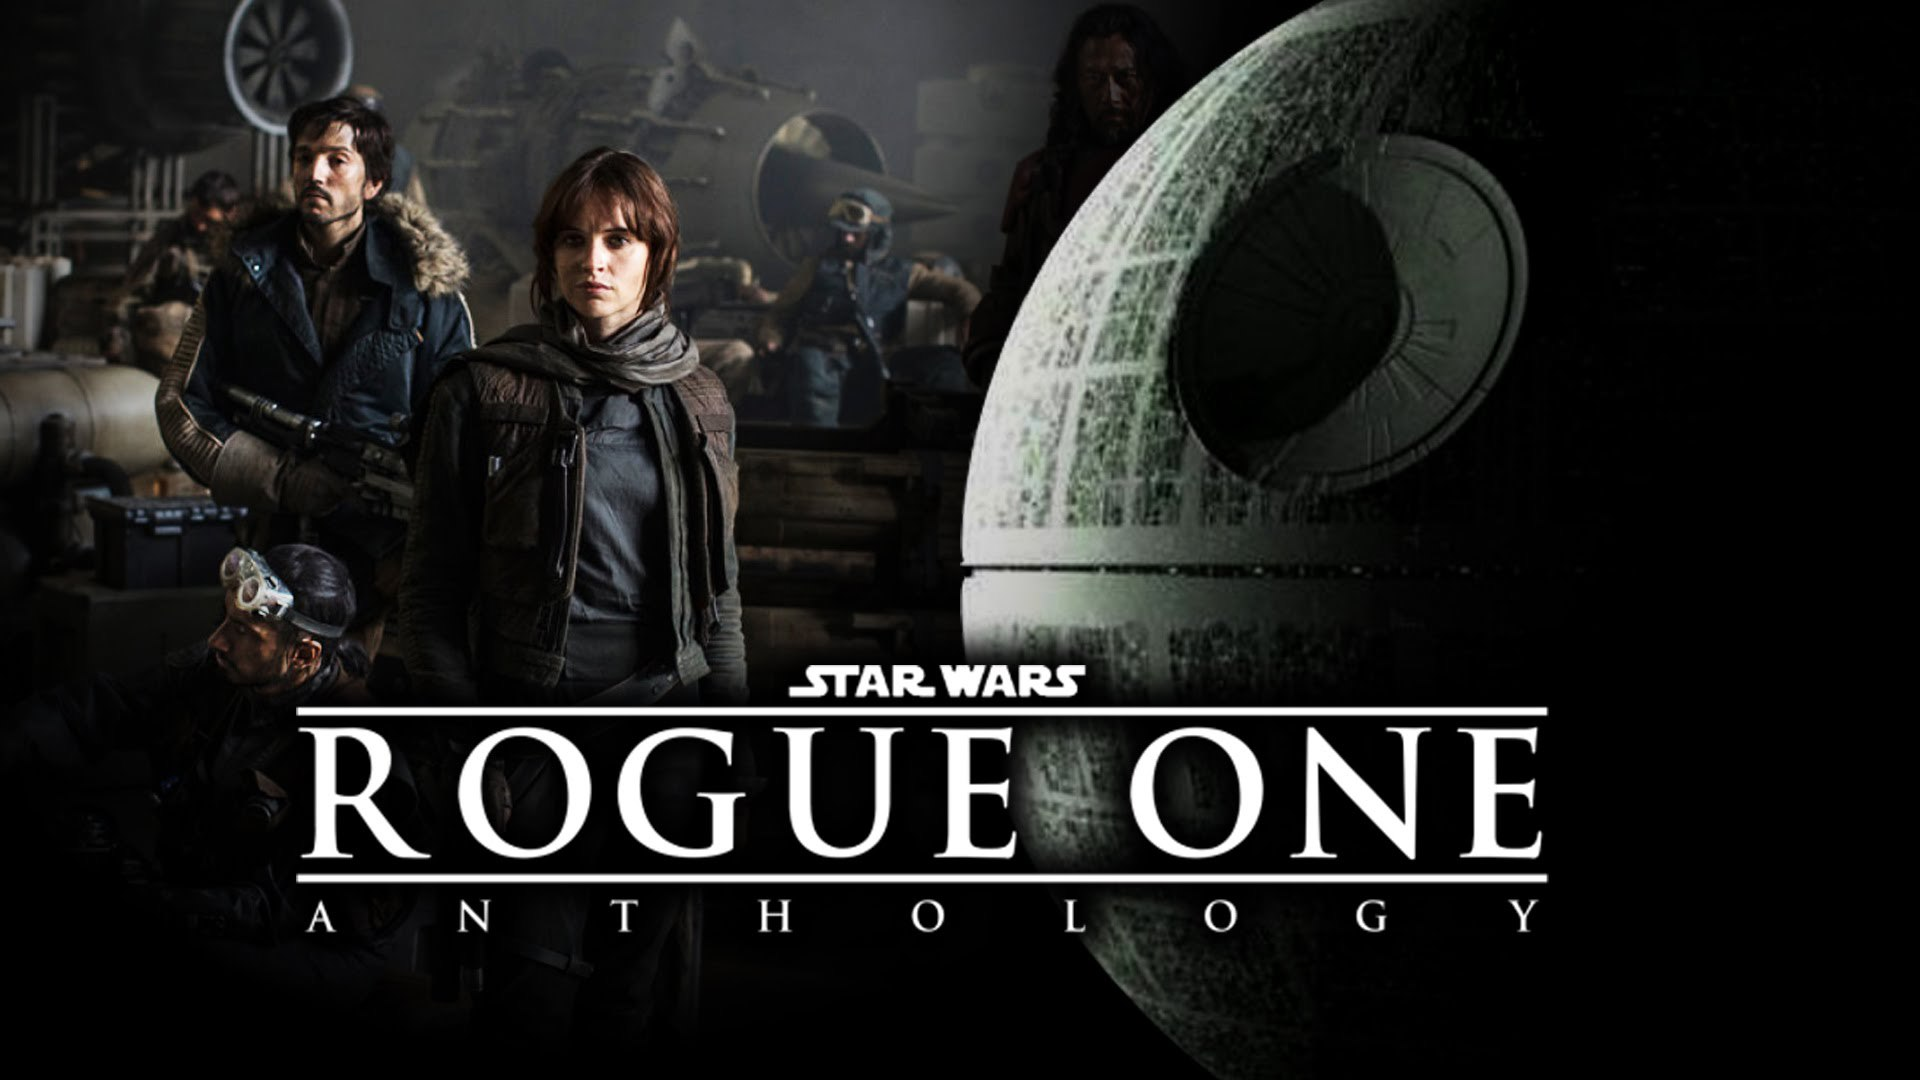 Star-Wars-Rogue-One-Wallpapers.jpg